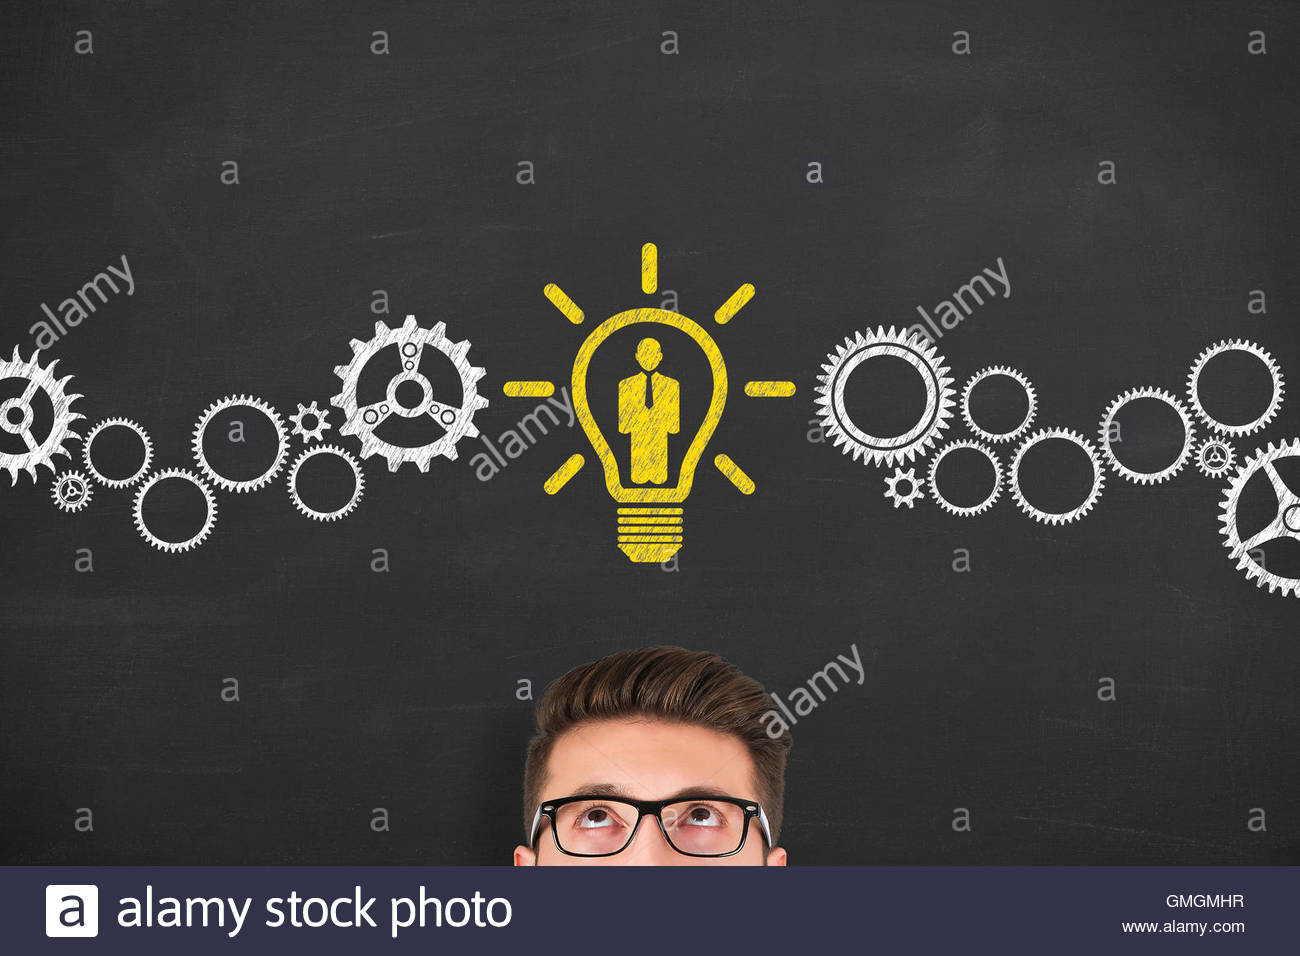 Recruitment Idea Concept on Blackboard human resources, recruitment, business, idea, creativity, innovation, leadership - Stock Image